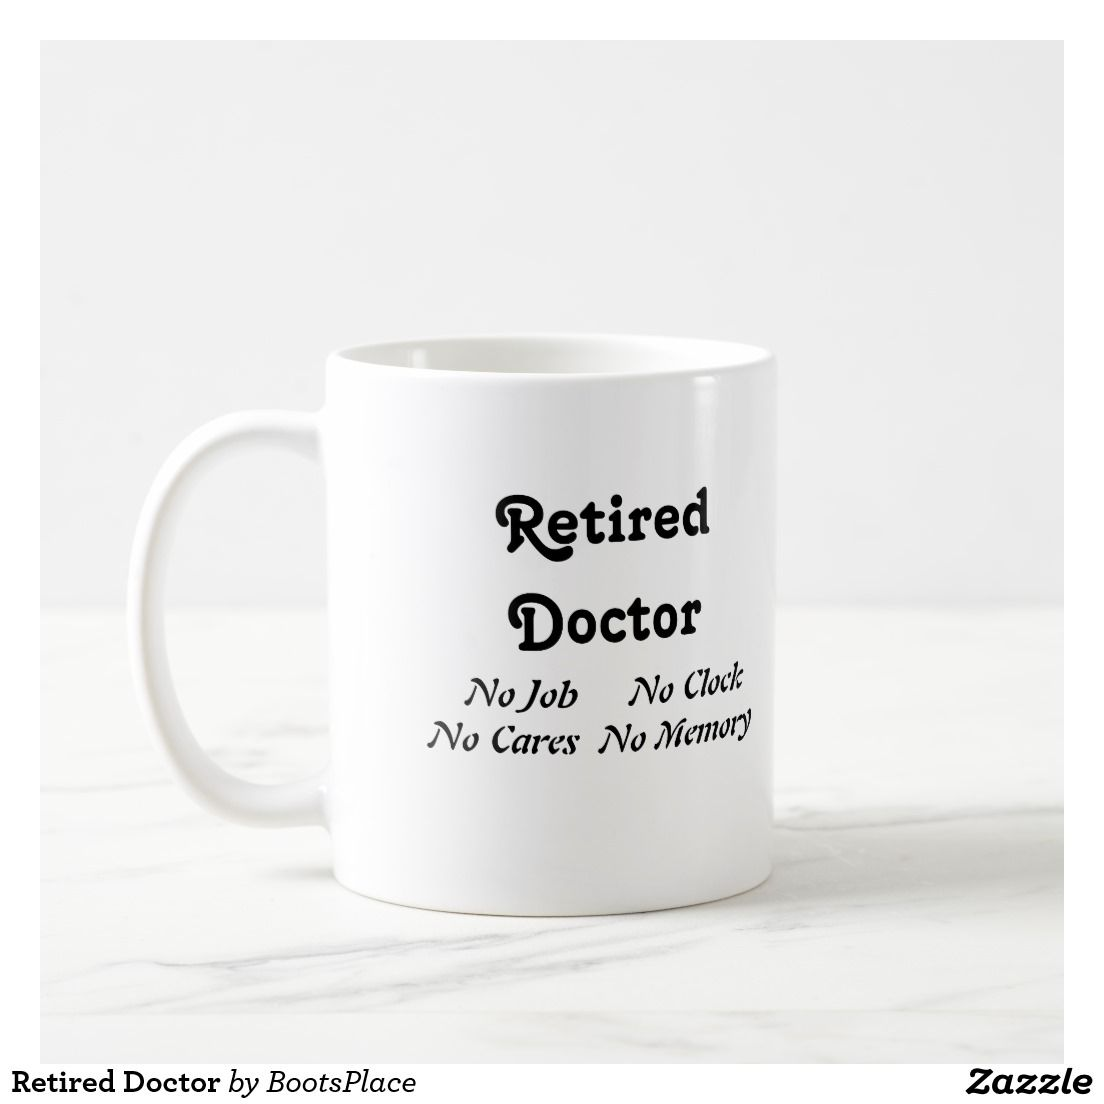 Worlds best doctor coffee mugs - Retired Doctor Coffee Mug